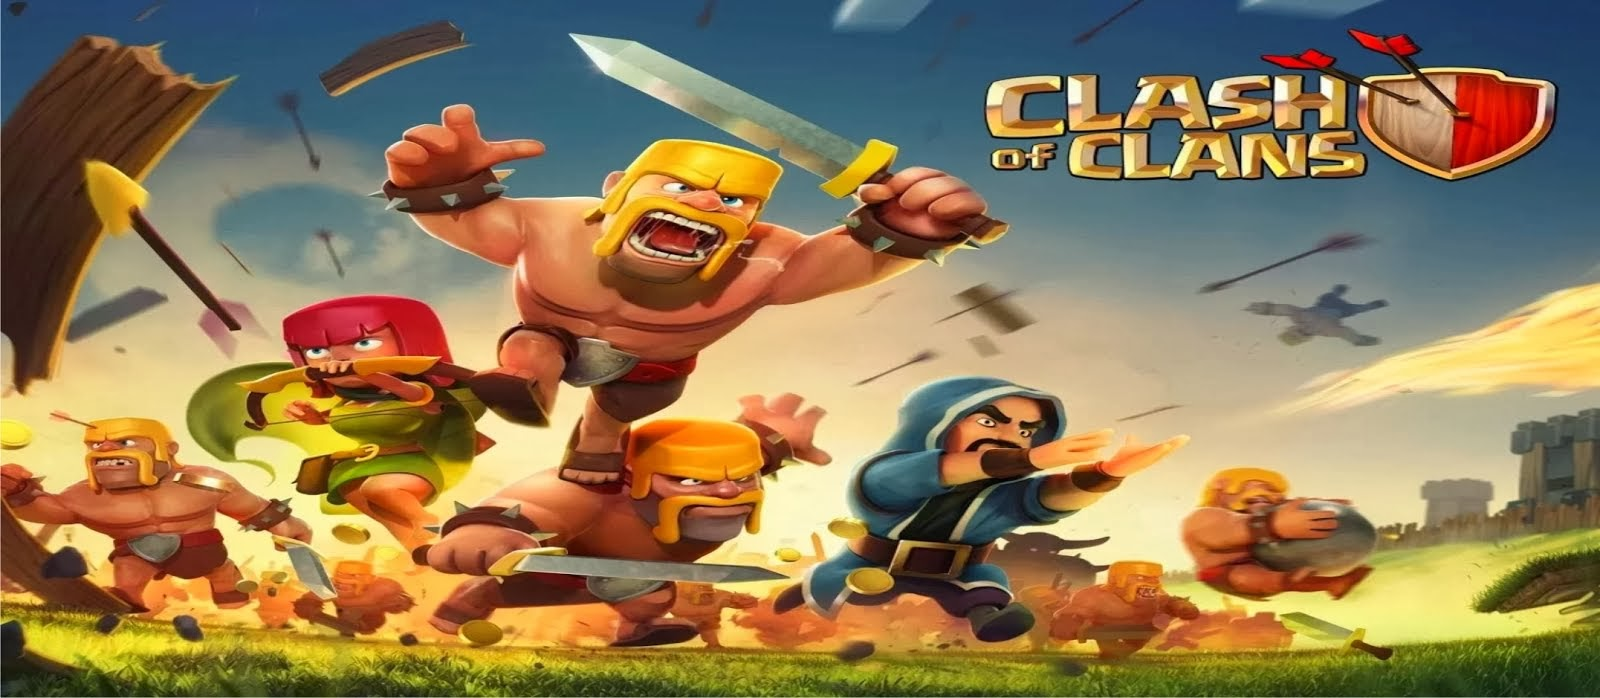 clash of clans free gems android no survey no download 2015